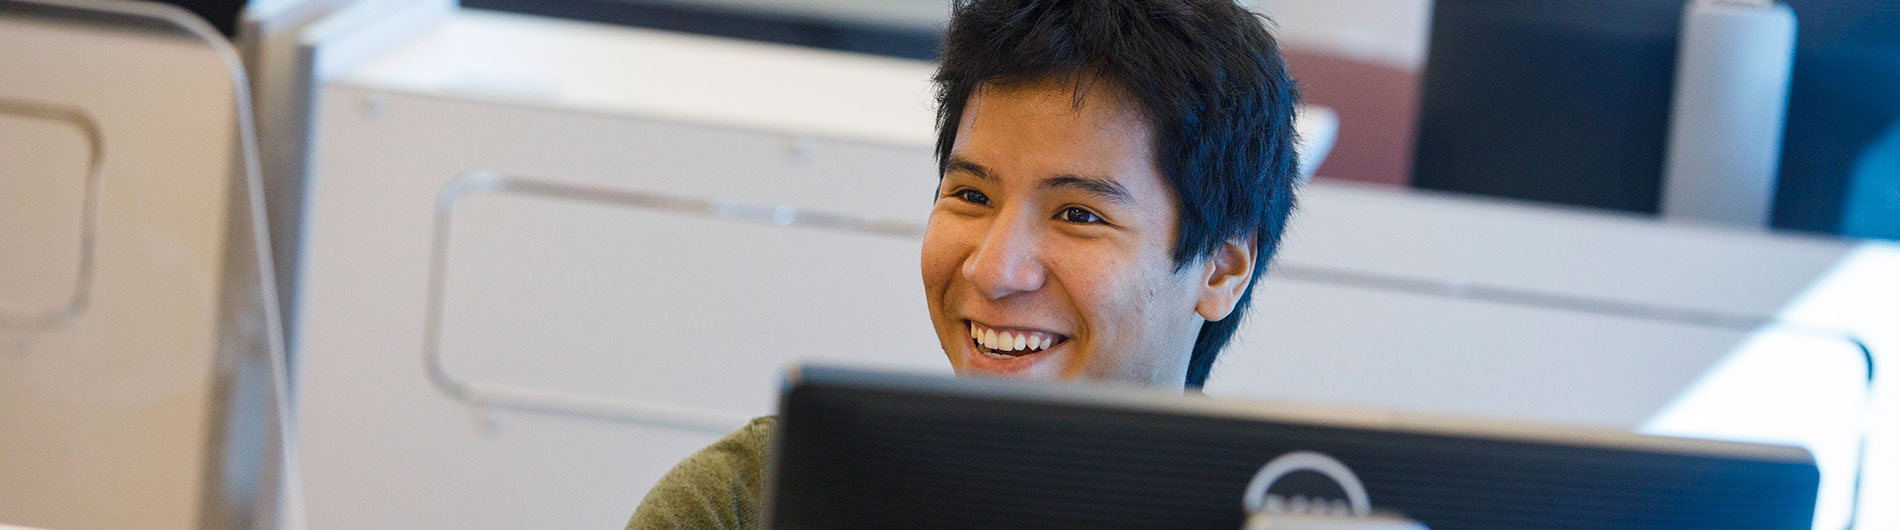 Male student in computer lab smiling and talking with counselor or adviser